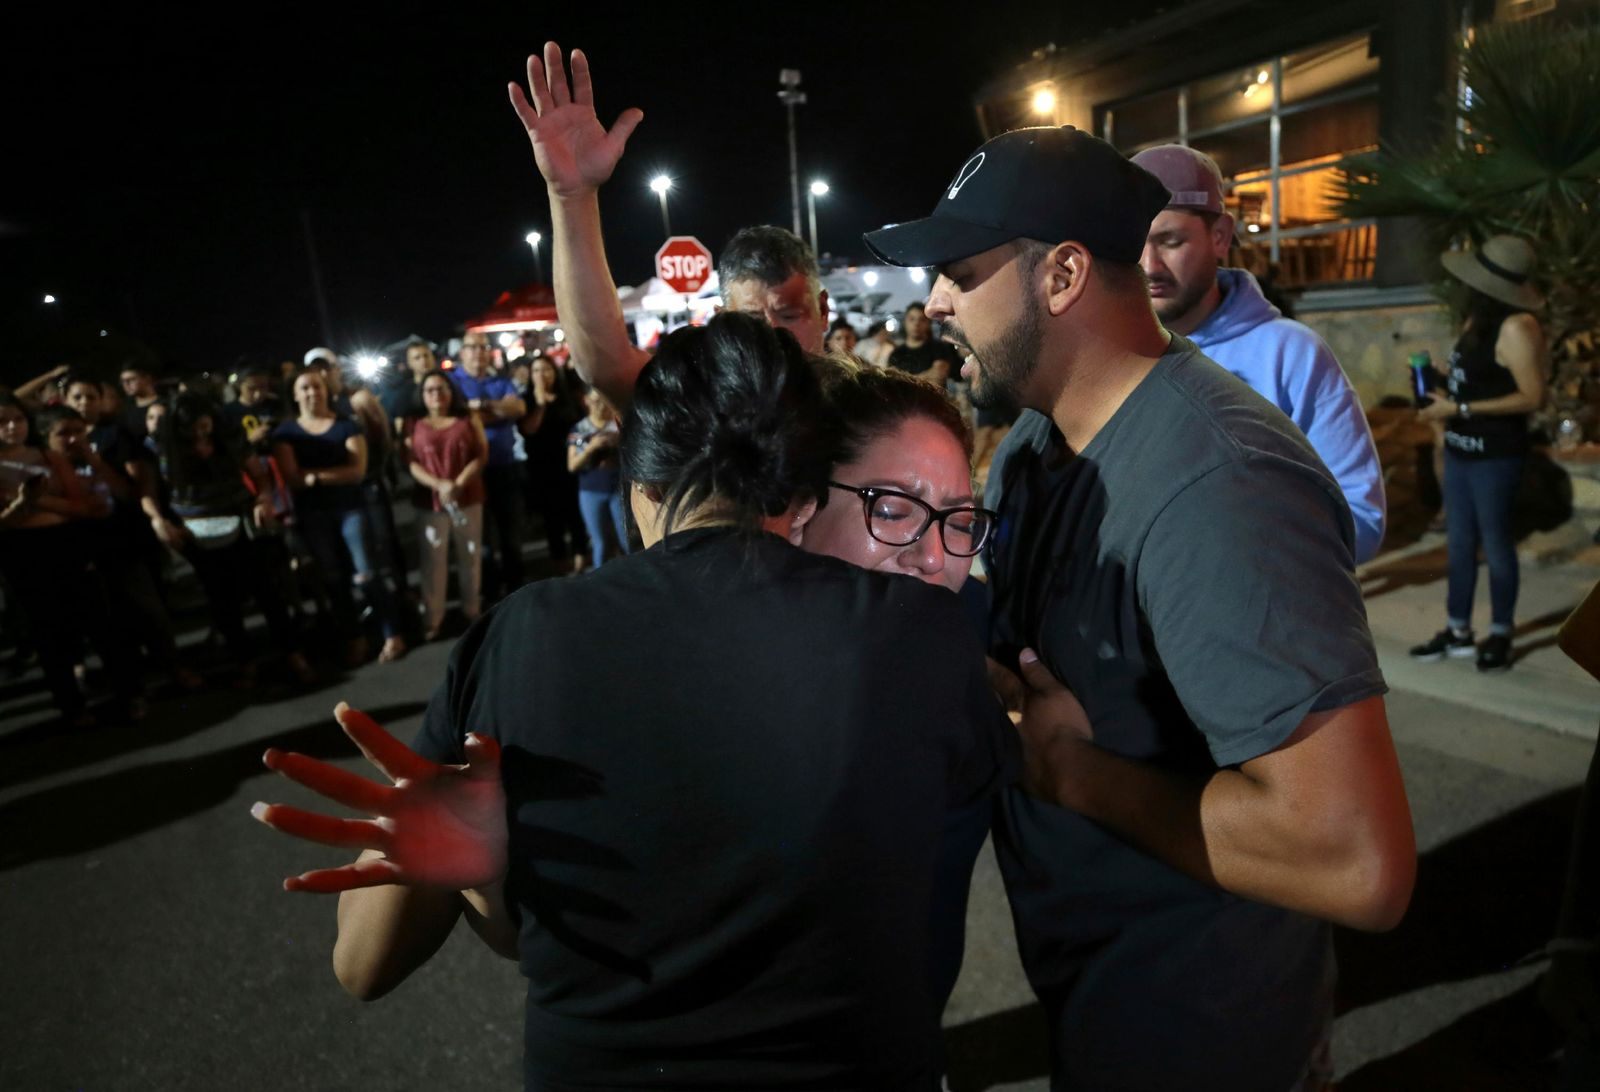 A woman is overcome with emotion as members of the Iglesia Cristiana Manatial en el Desierto pray for her at a memorial Monday, Aug. 5, 2019, outside the Walmart in El Paso, Texas, where a mass shooting took place on Saturday. (Mark Lambie/The El Paso Times via AP)